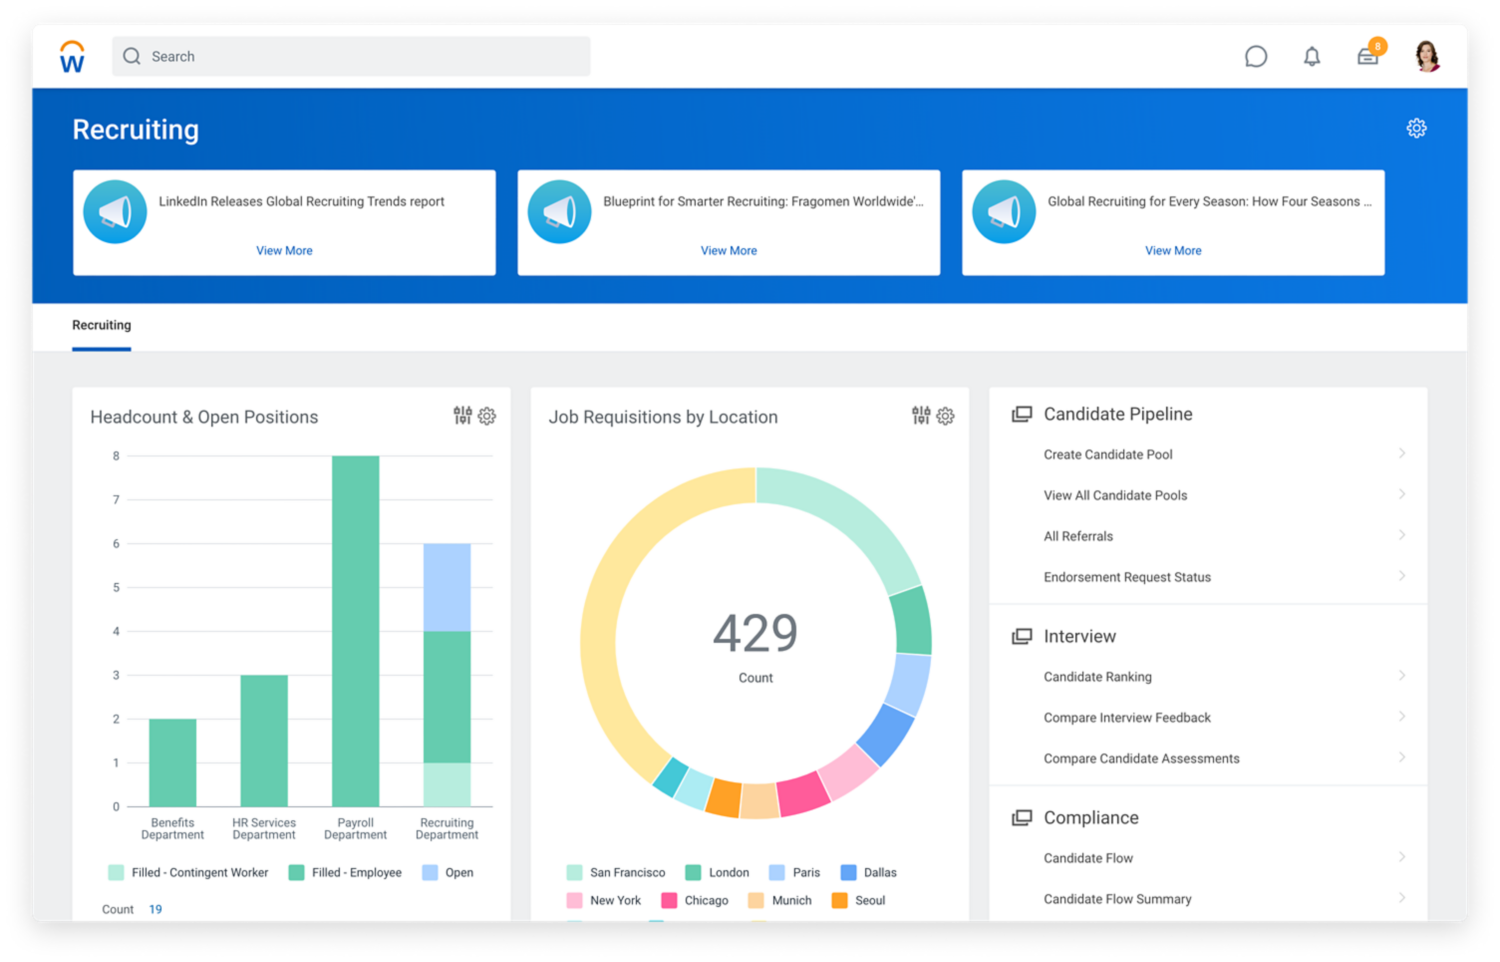 Talent acquisition dashboard showing graphs for headcount, open positions, and job requisitions by location.